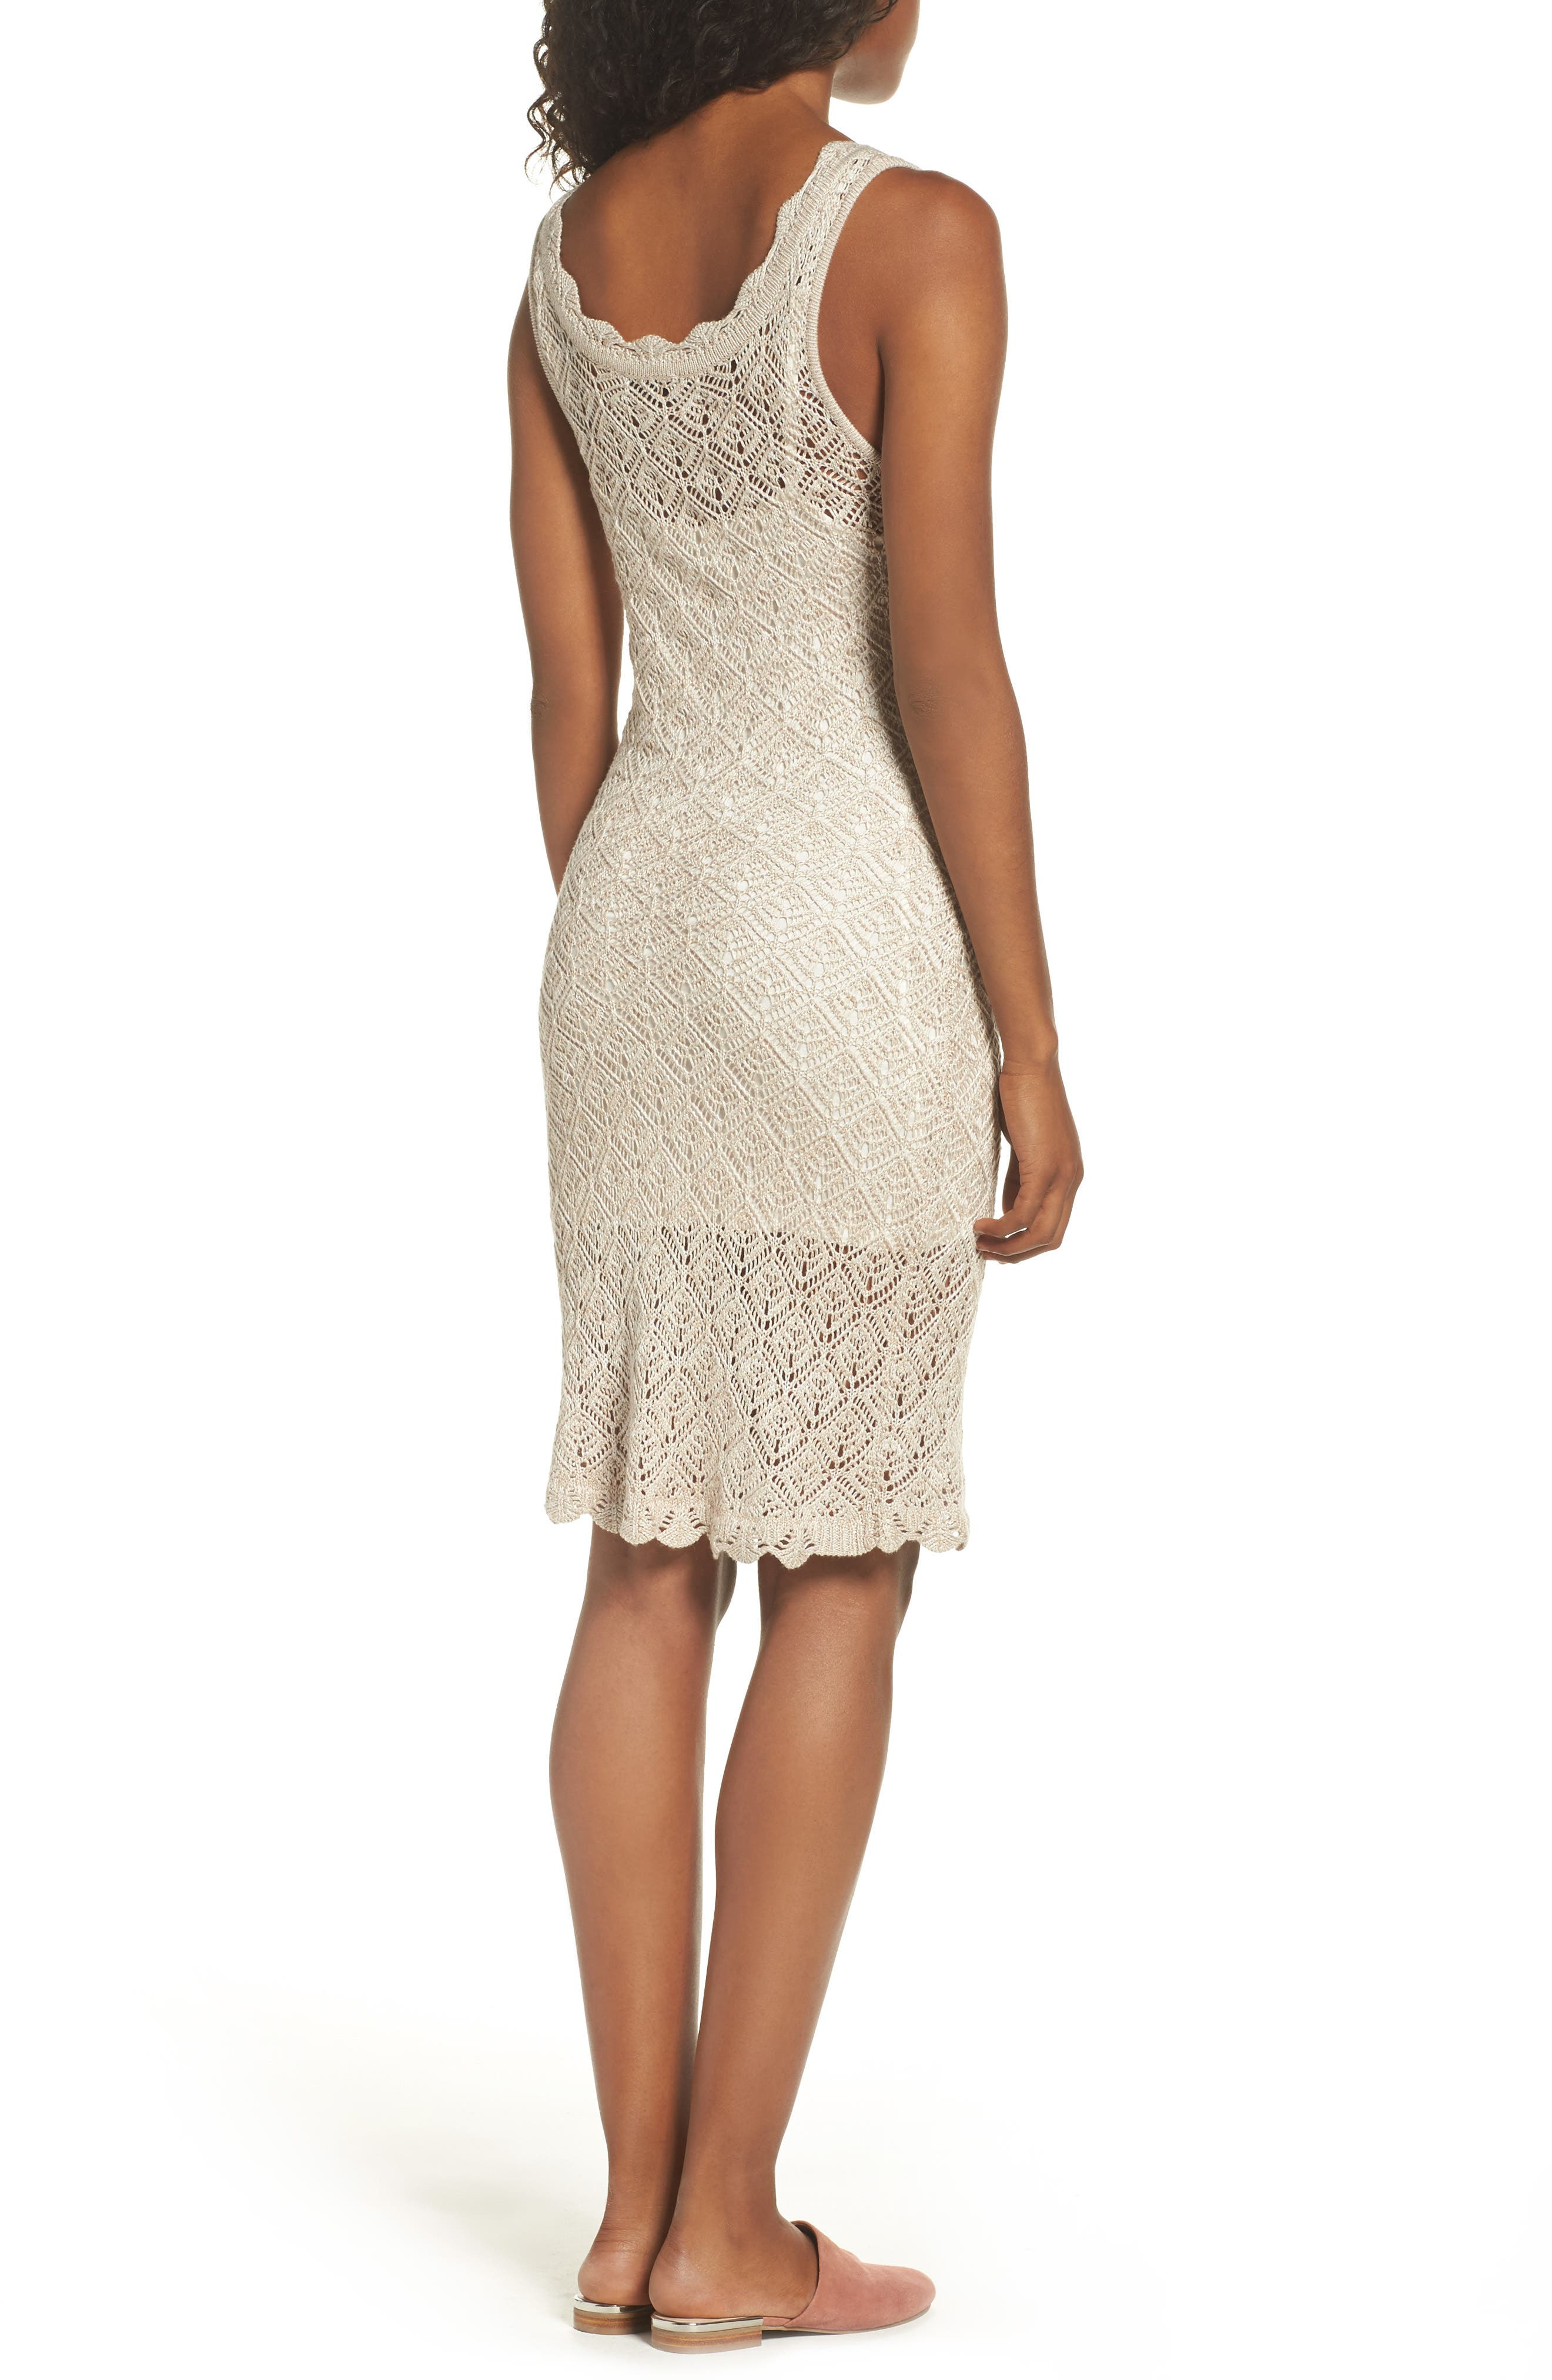 Picnic By The Lagoon Lace Dress,                             Alternate thumbnail 3, color,                             Sand